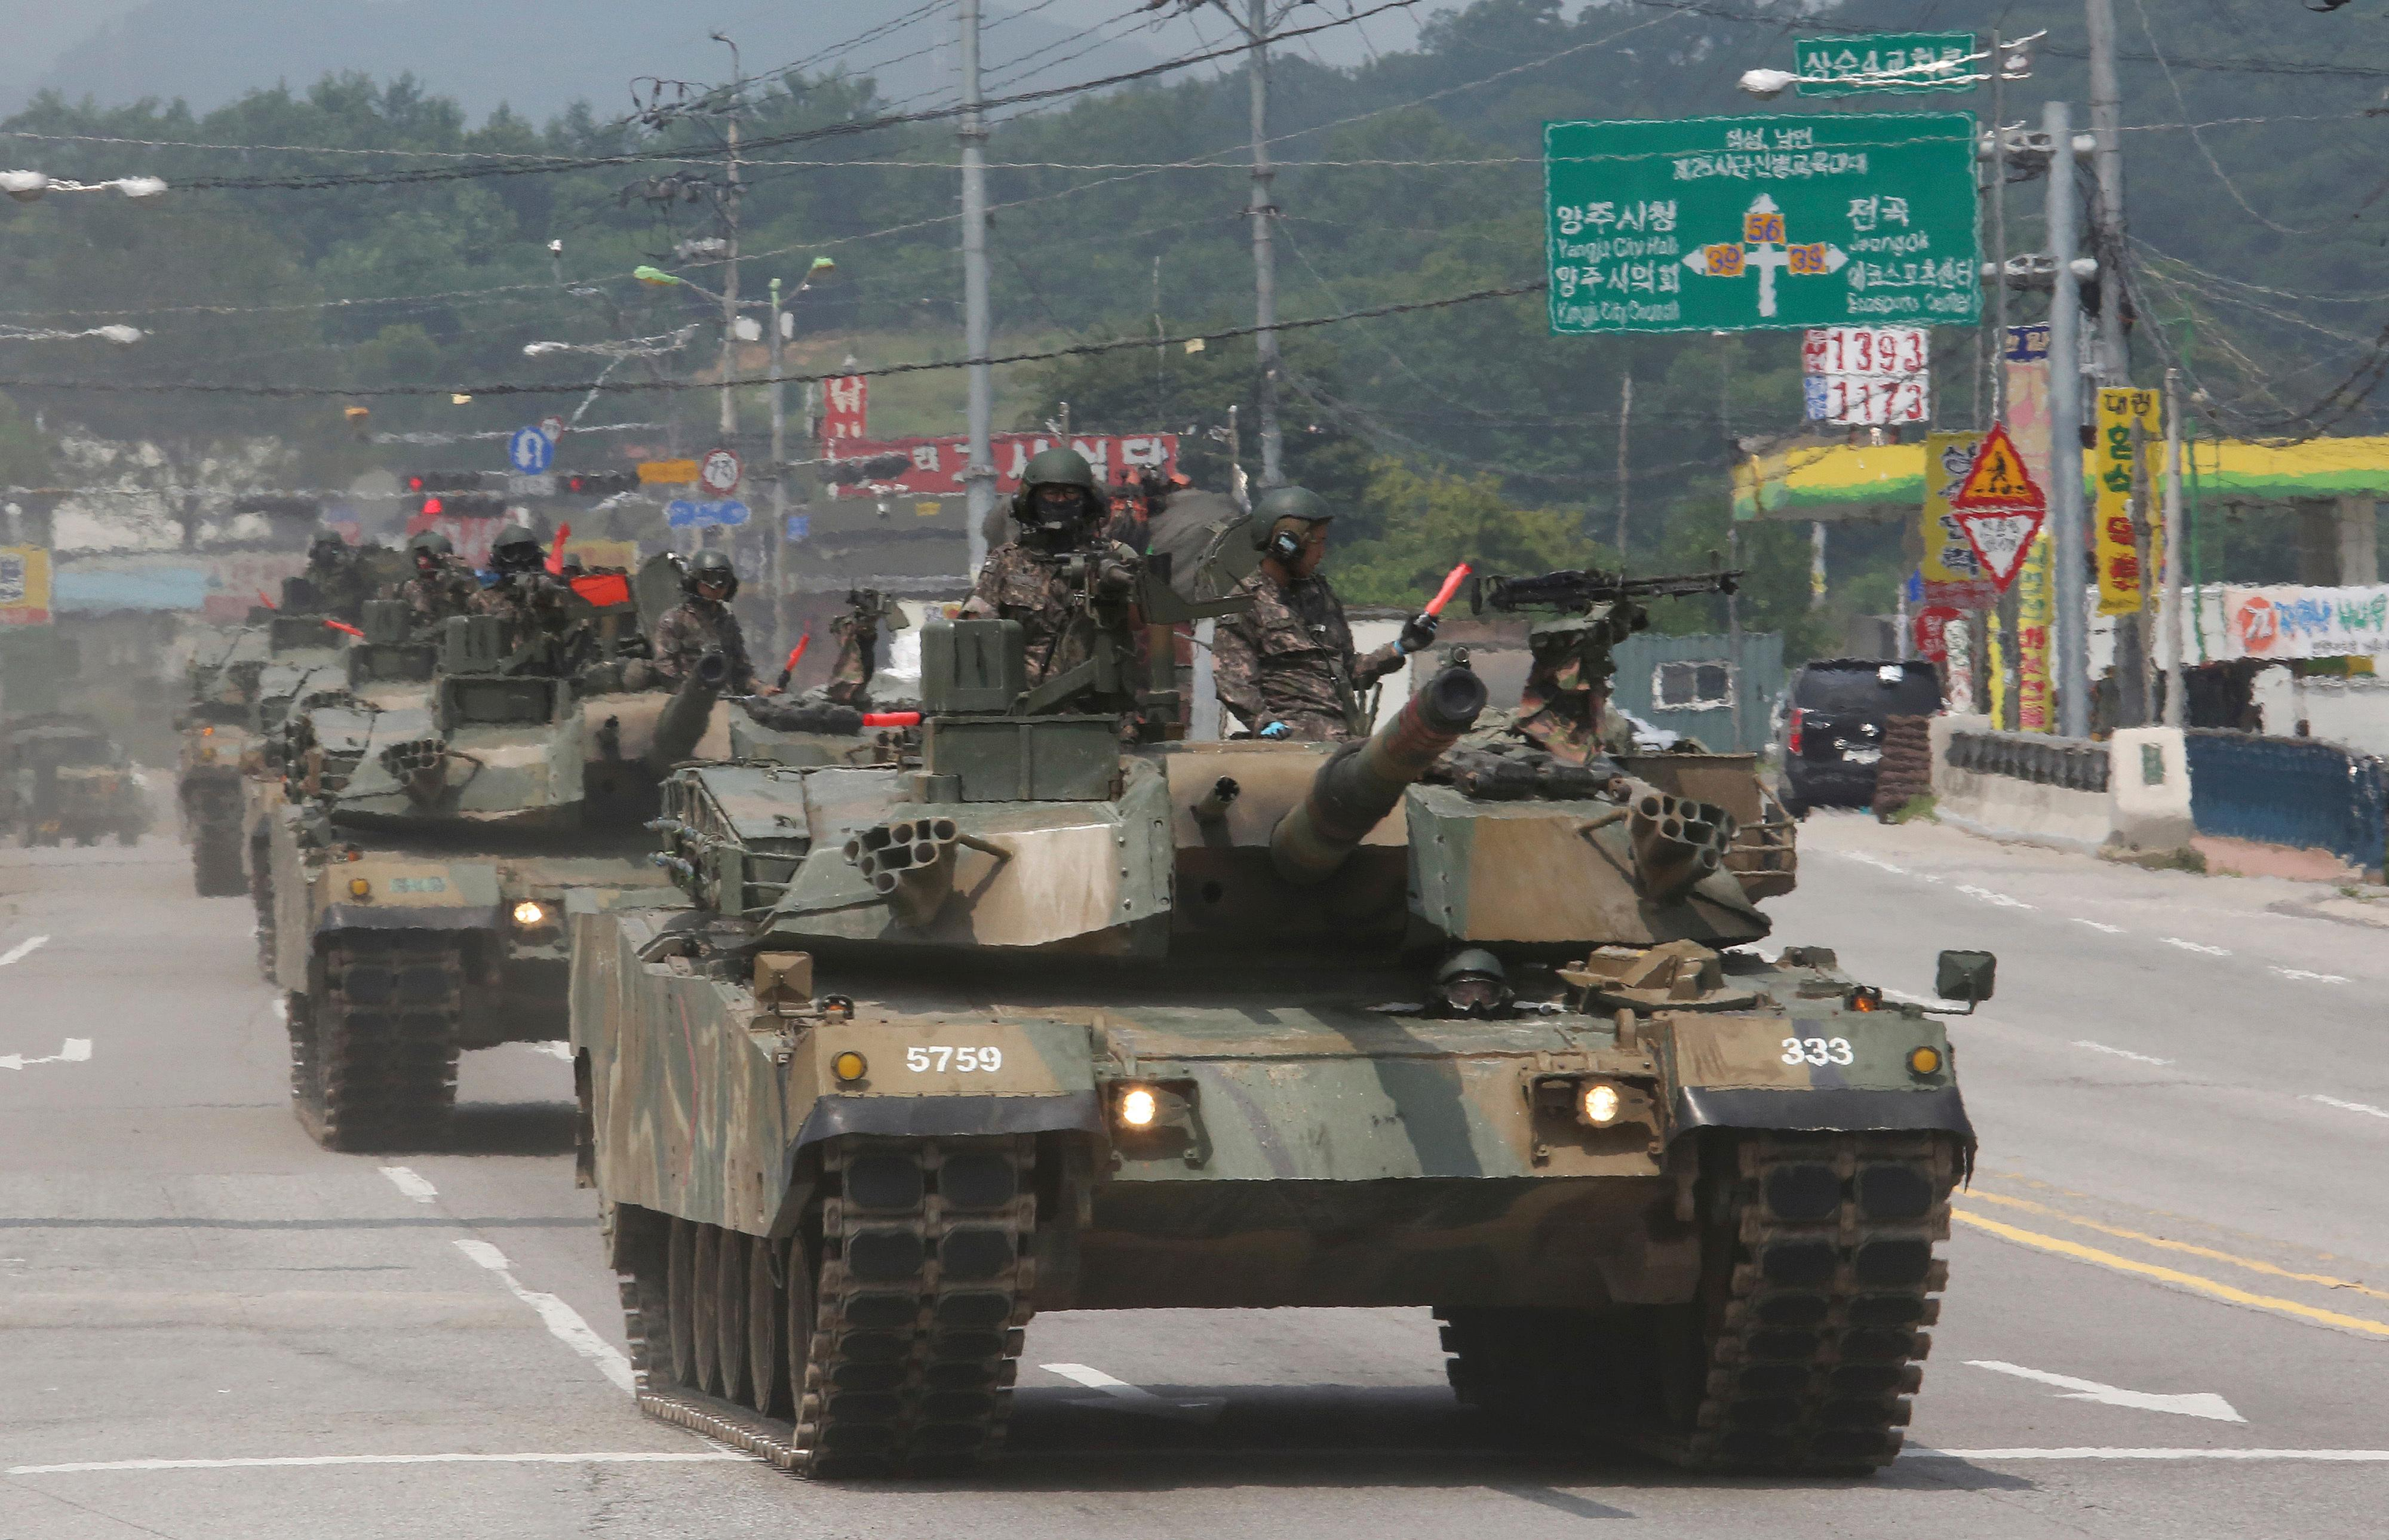 South Korean army K-1 tanks move during the annual exercise in Paju, South Korea, near the border with North Korea,  Wednesday, July 5, 2017. (AP Photo/Ahn Young-joon)